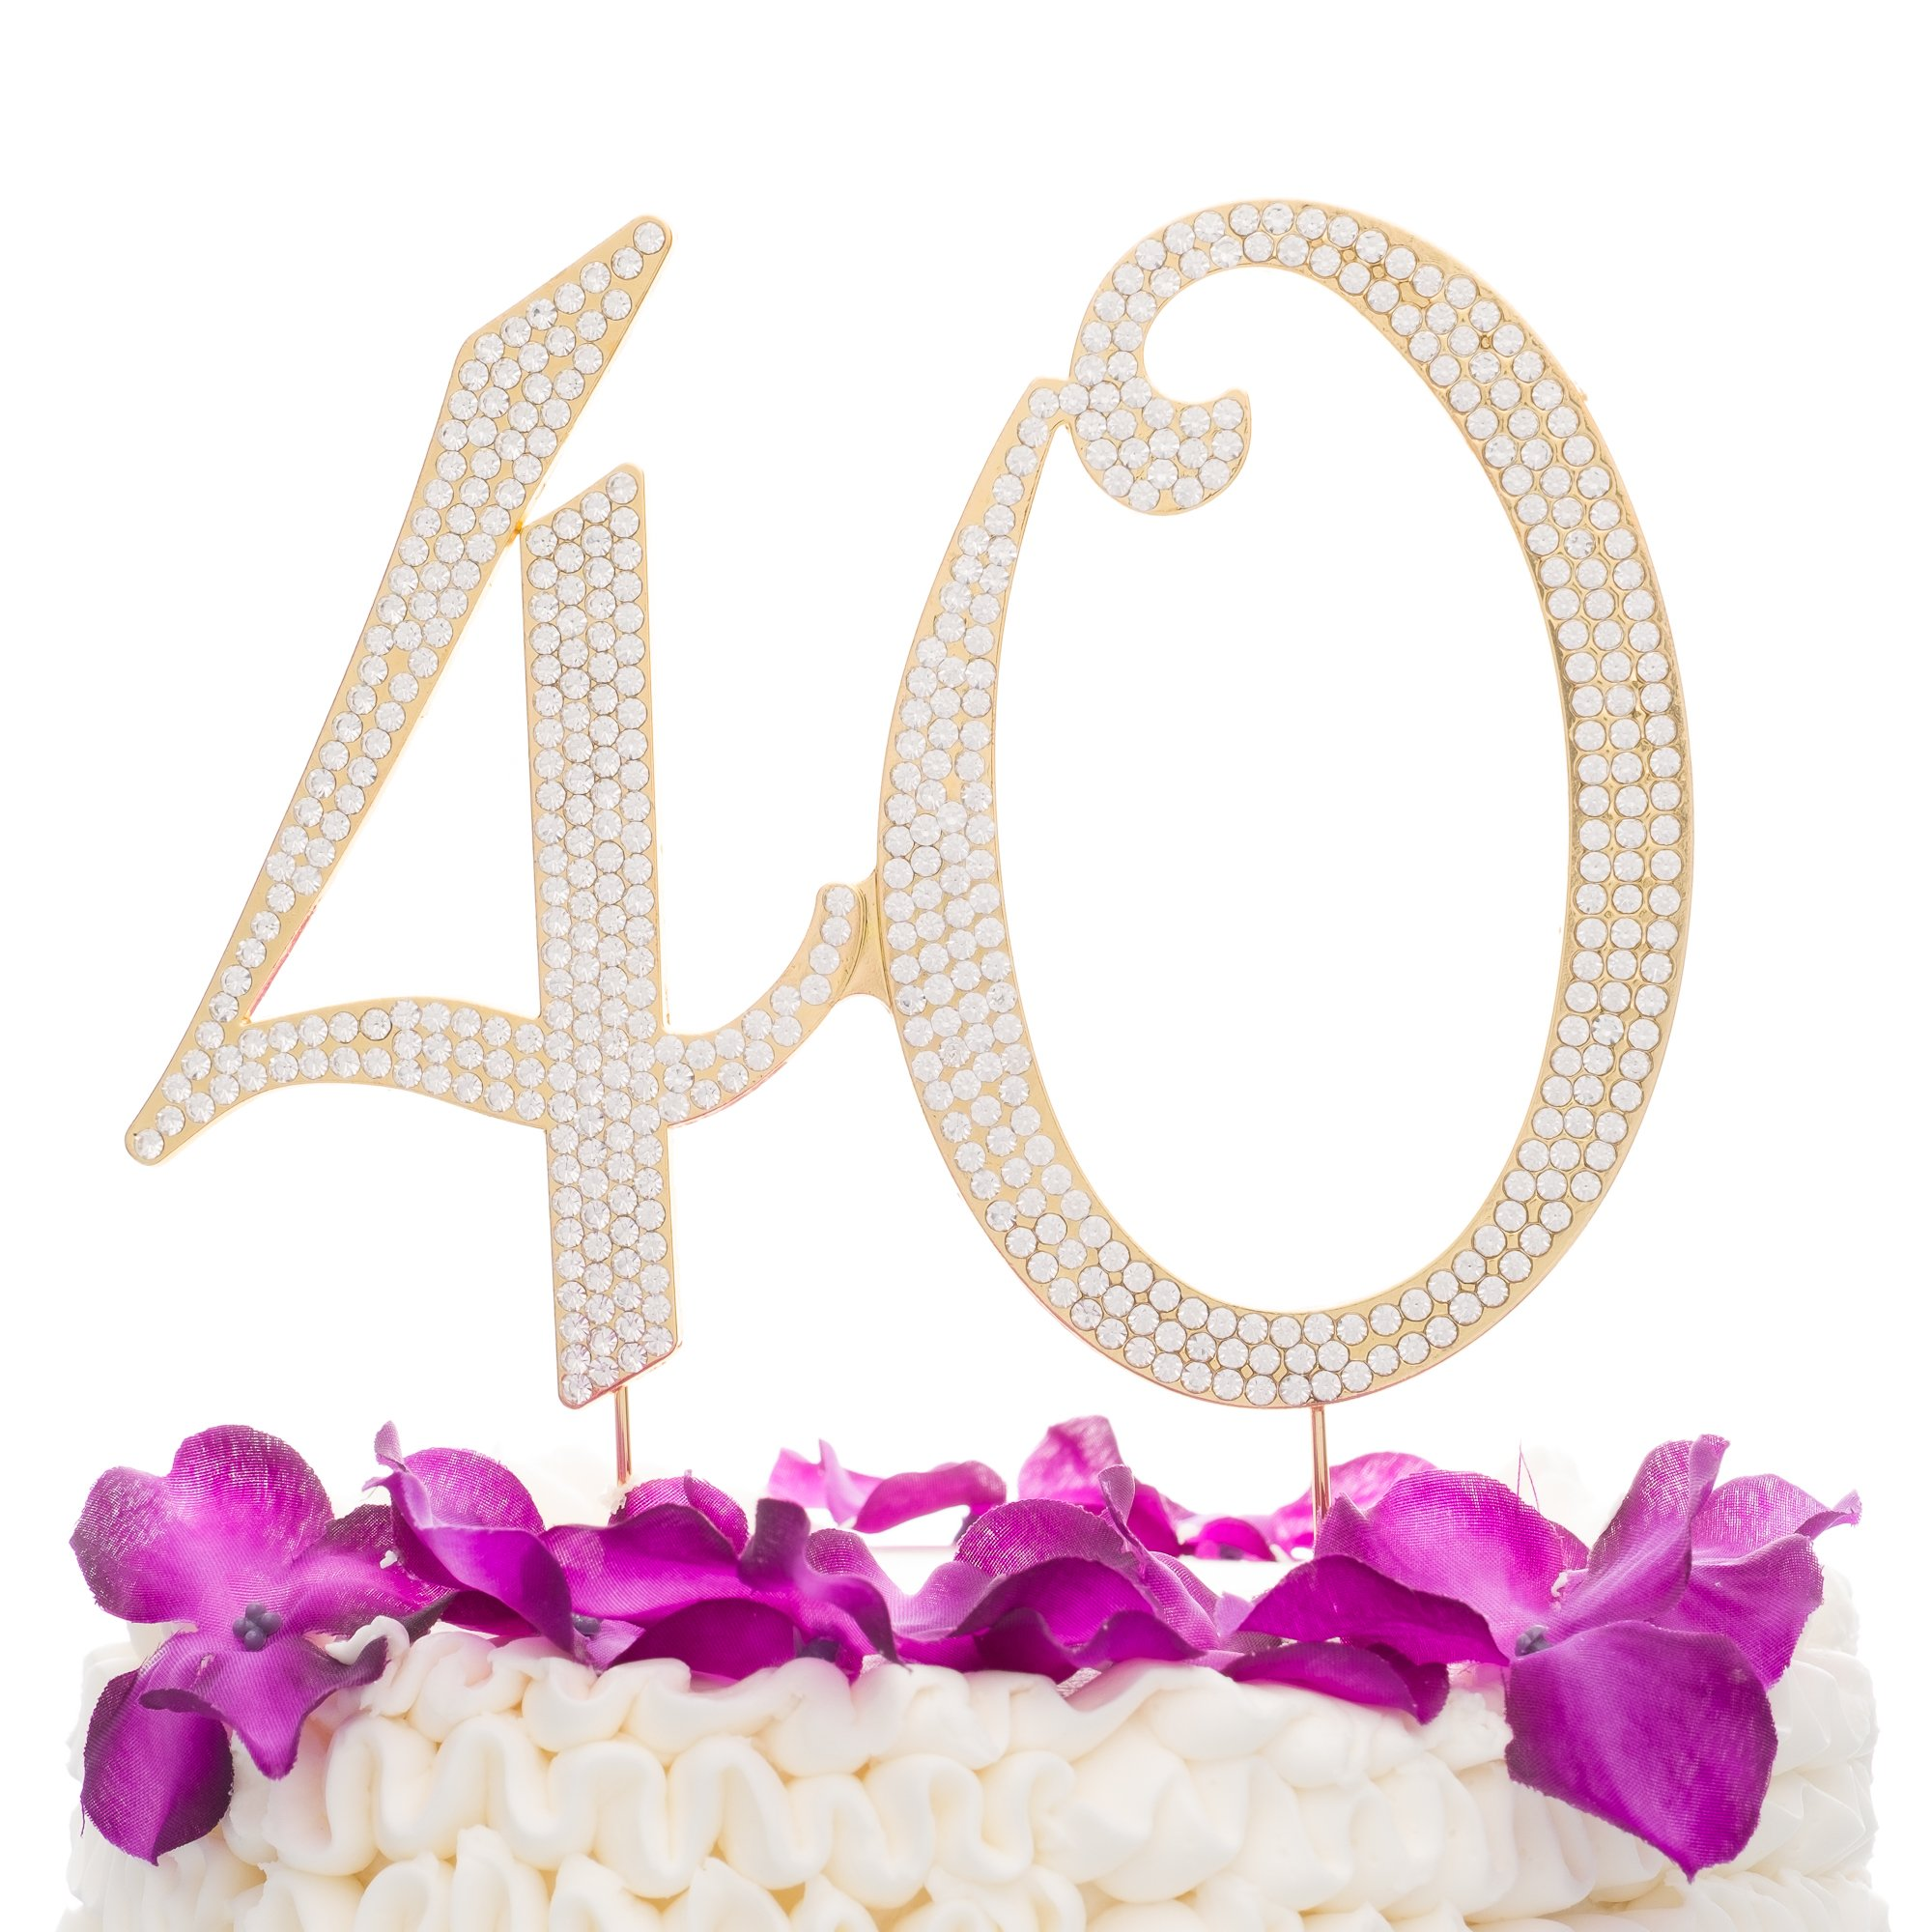 Ella Celebration 40 Cake Topper For 40th Birthday Party Or